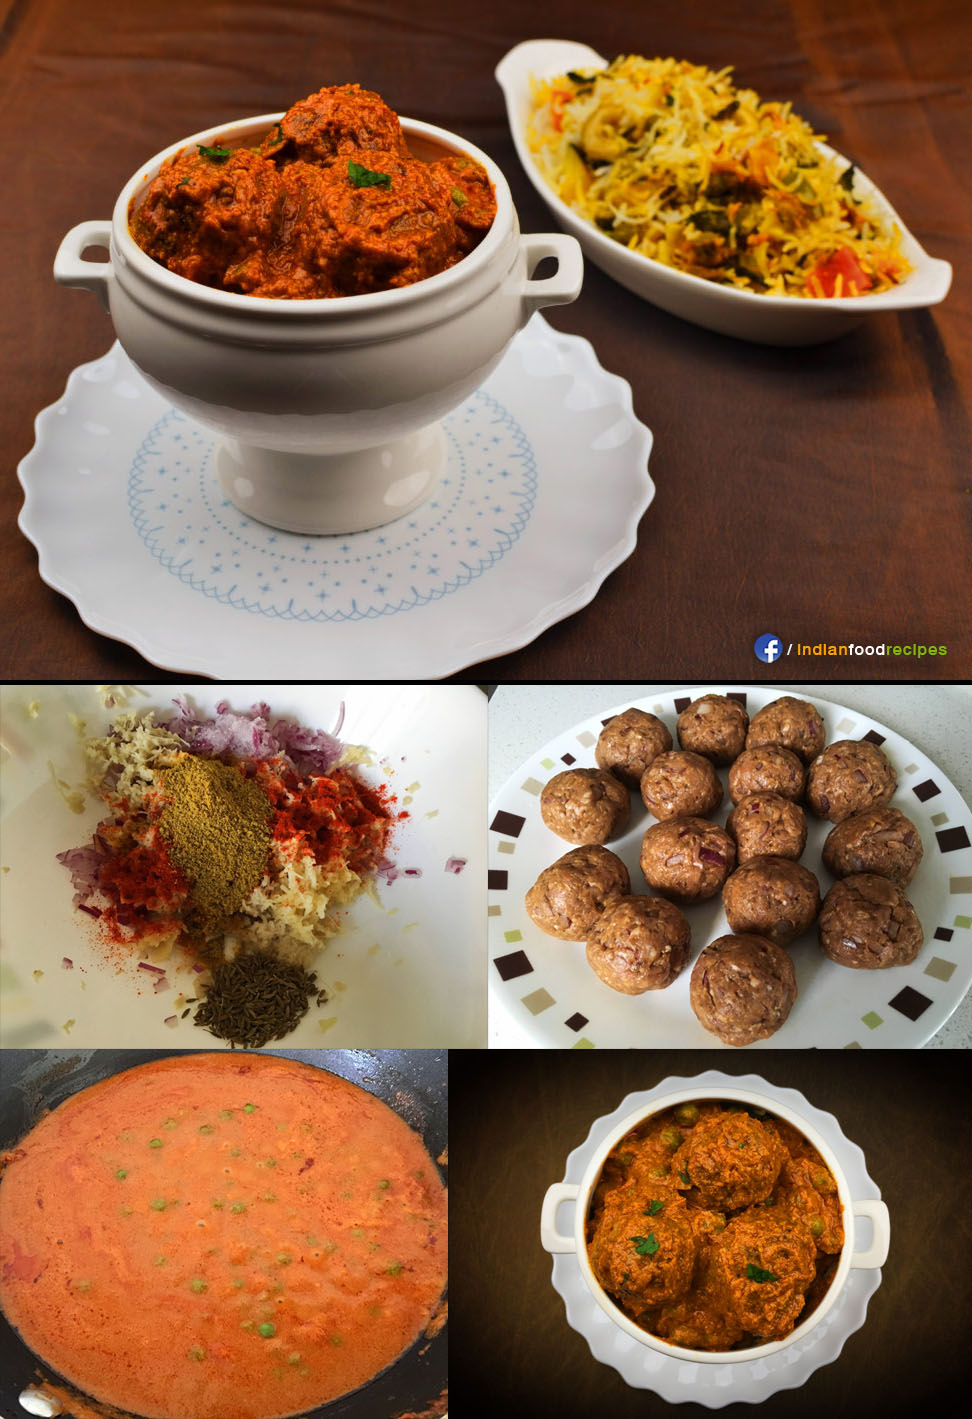 Lamb kofta curry recipe step by step pictures indian food recipes lamb kofta curry recipe step by step pictures forumfinder Gallery